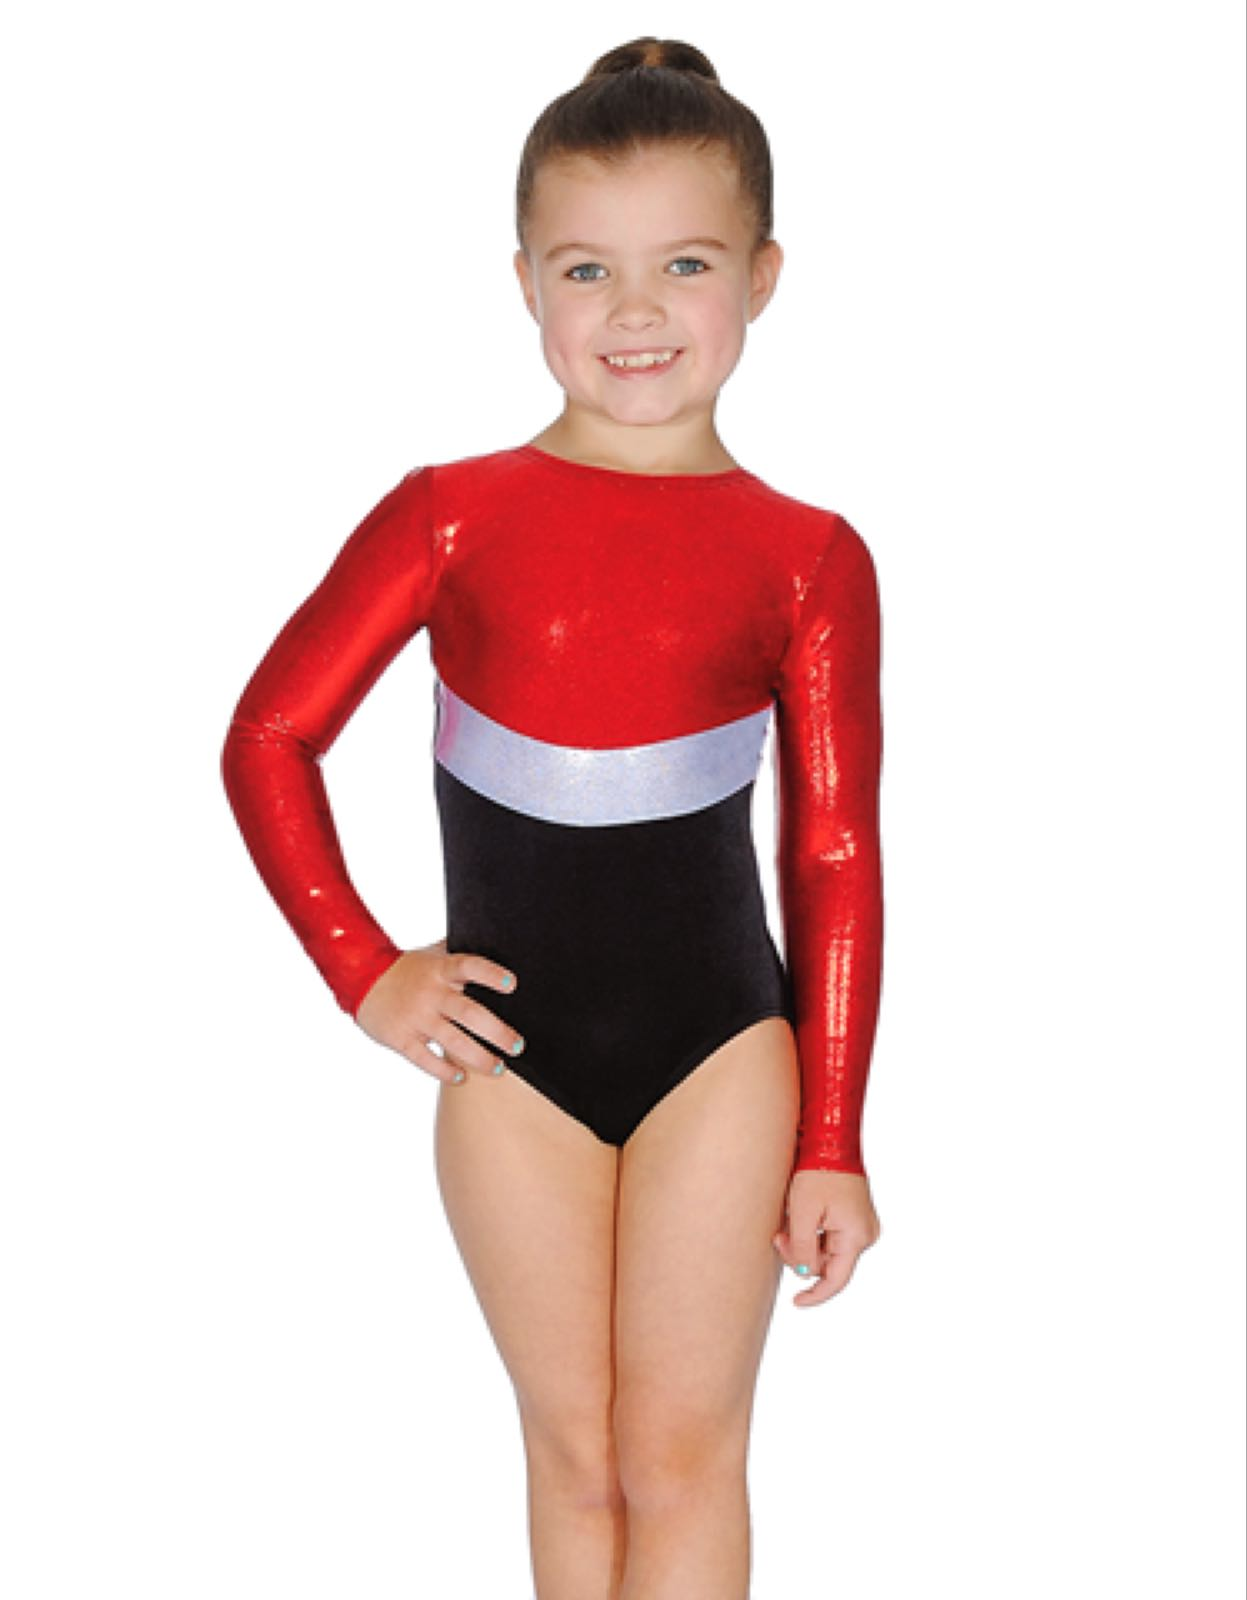 RV - Rio Long Sleeved Gymnastics Leo